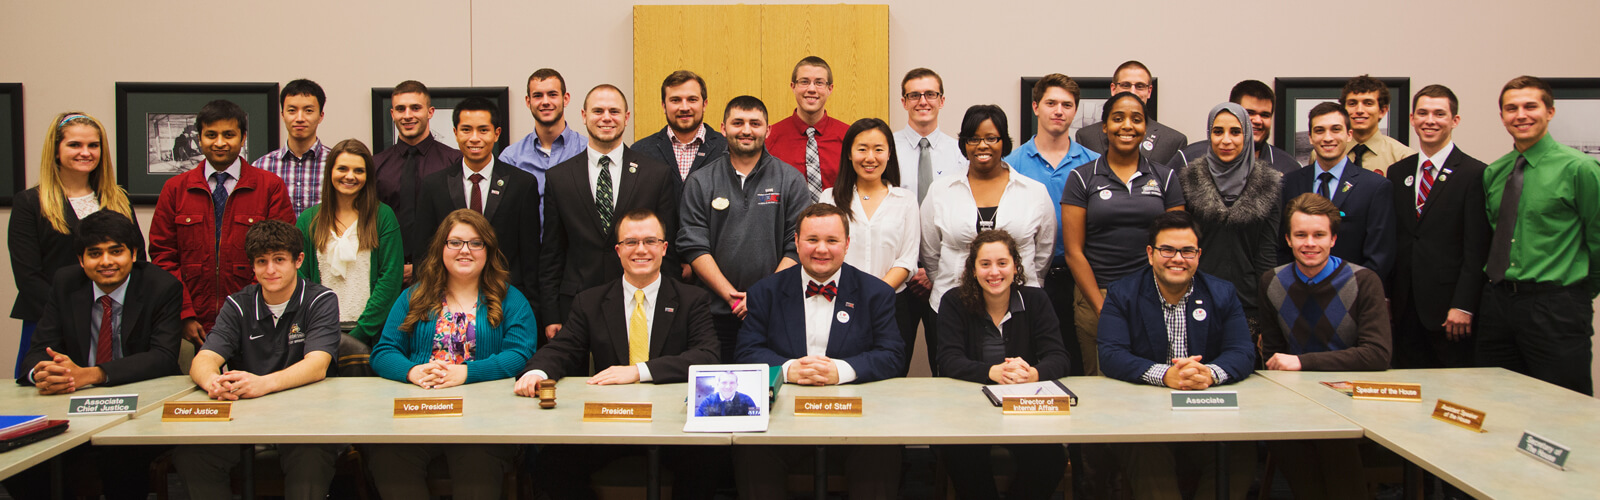 Full Group shot of the Wright State Student Government